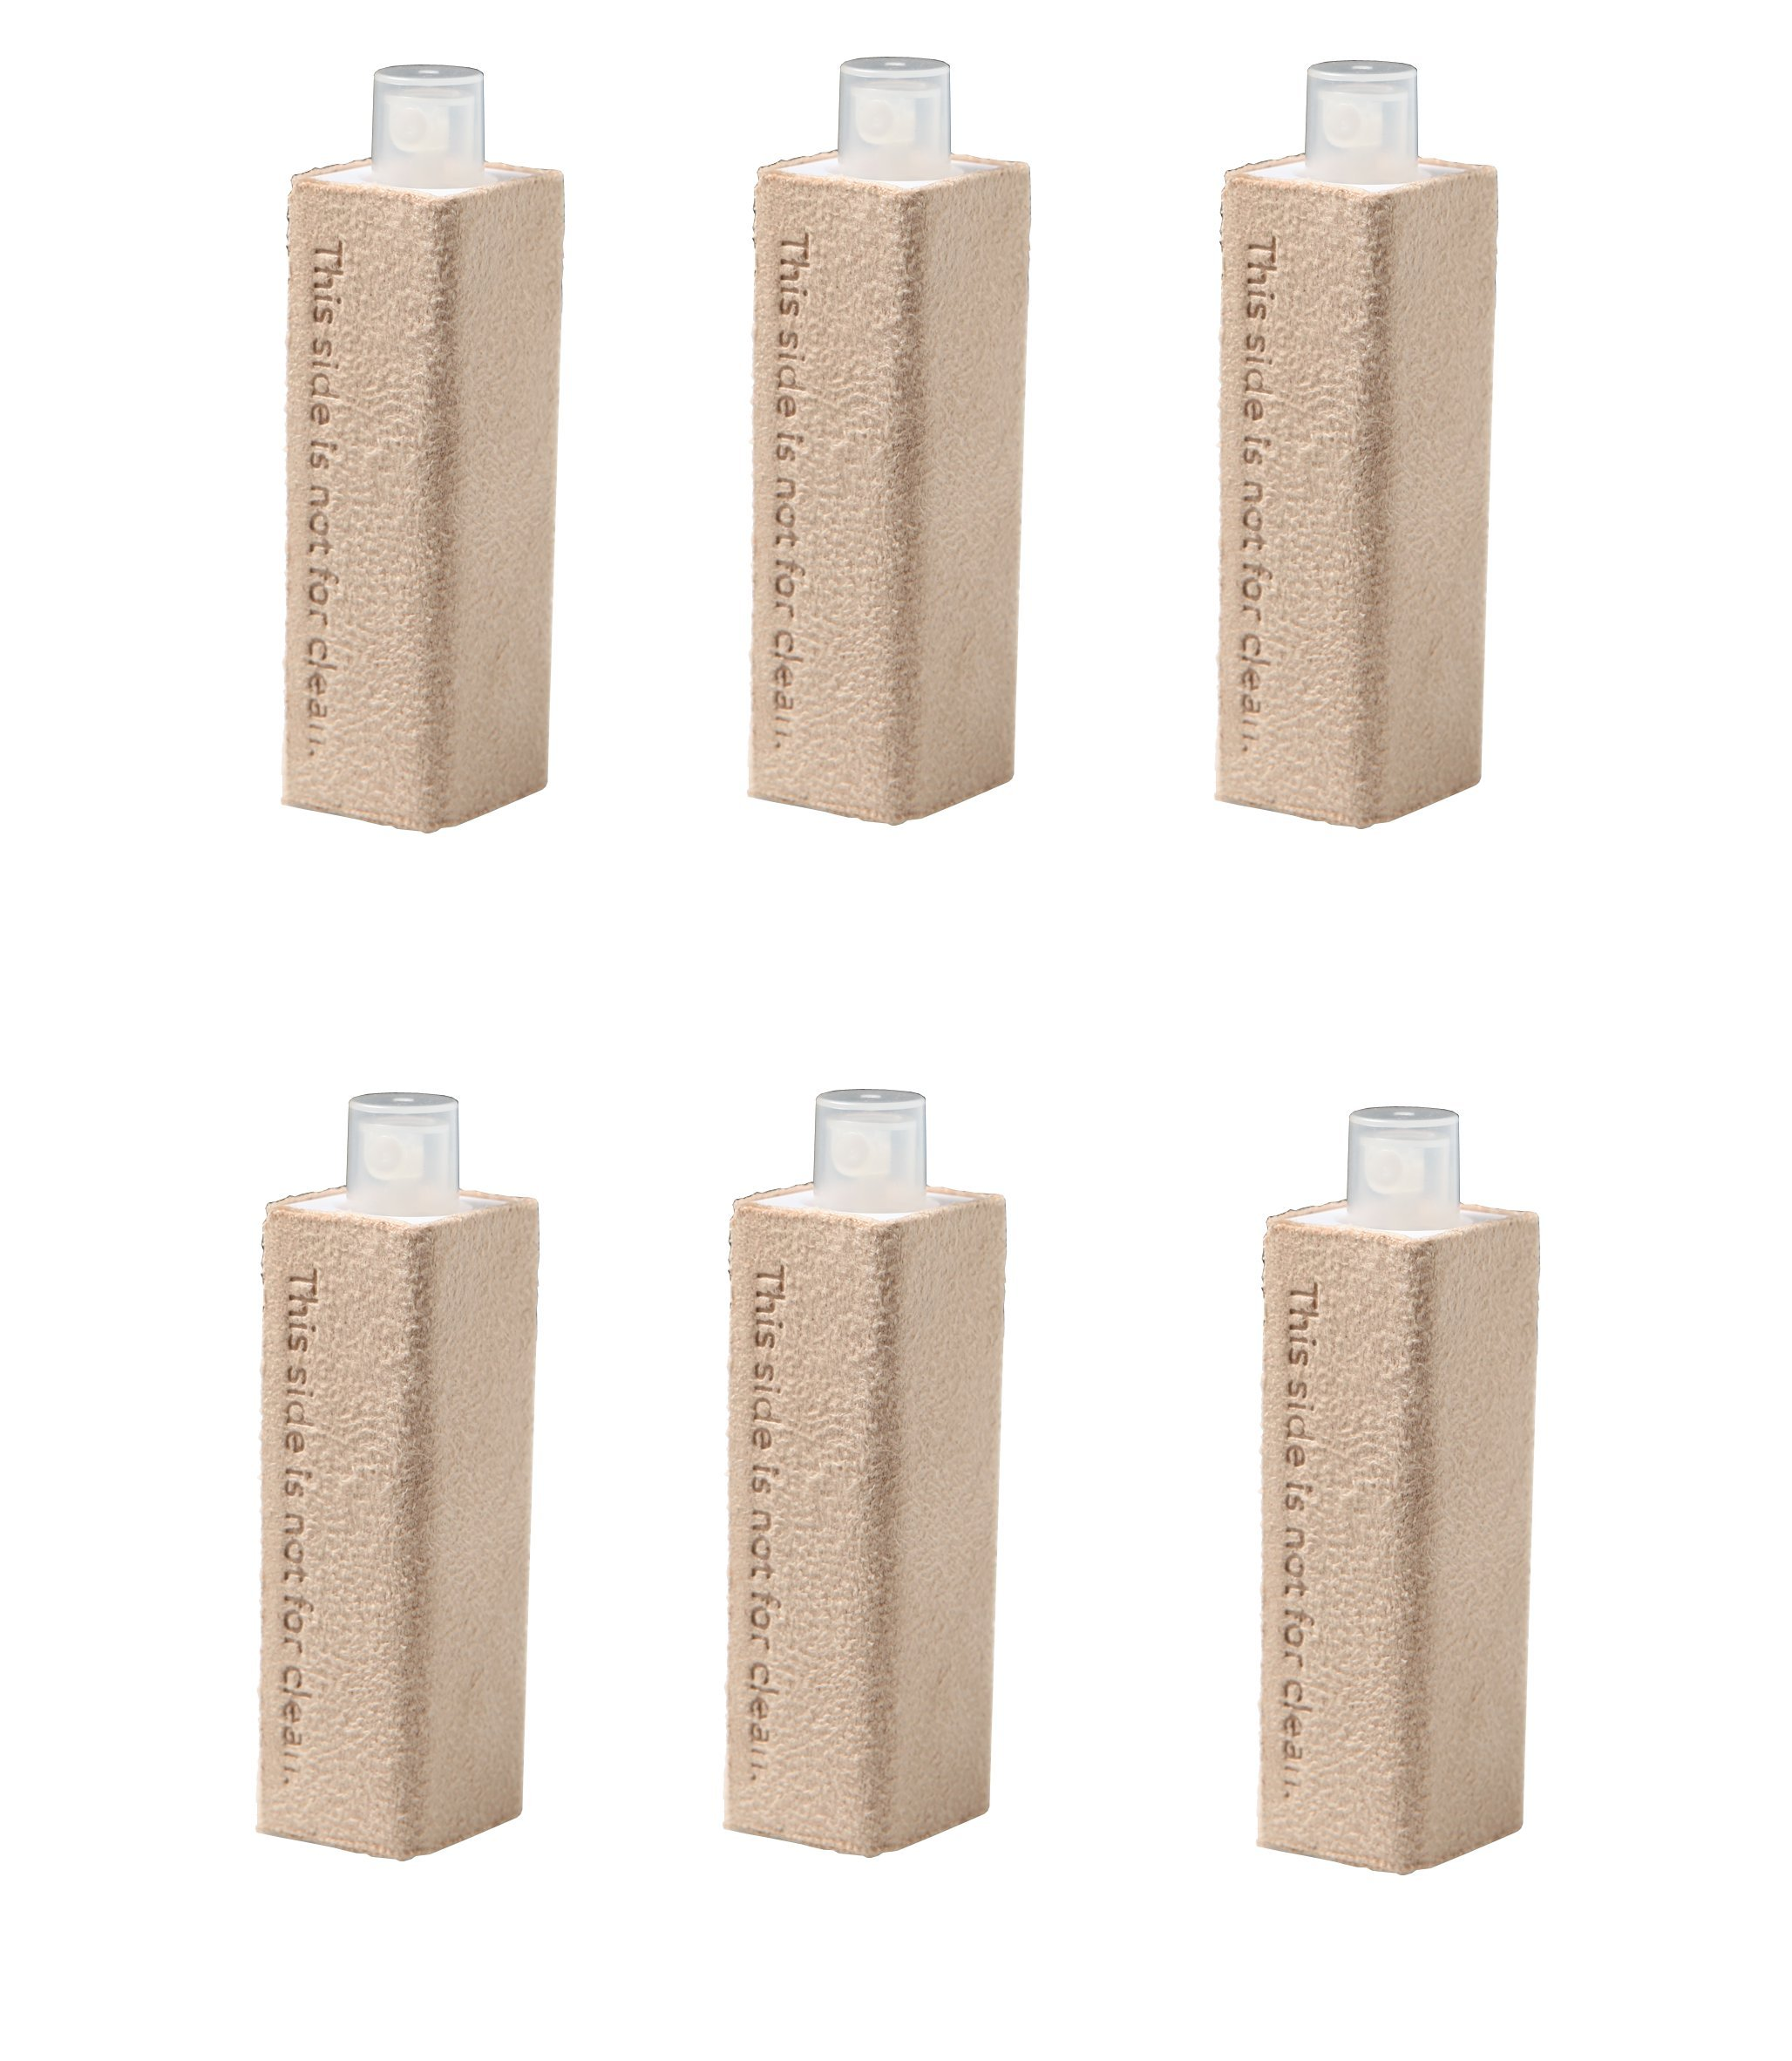 6 Pcs Tan Color Microfiber & Spray 2-in-1 Screen Cleaner for iPhones, iPads, Cell phones, Tablets, Laptops, any touchscreens - It's Portable & Compact (TAN-6pcs)